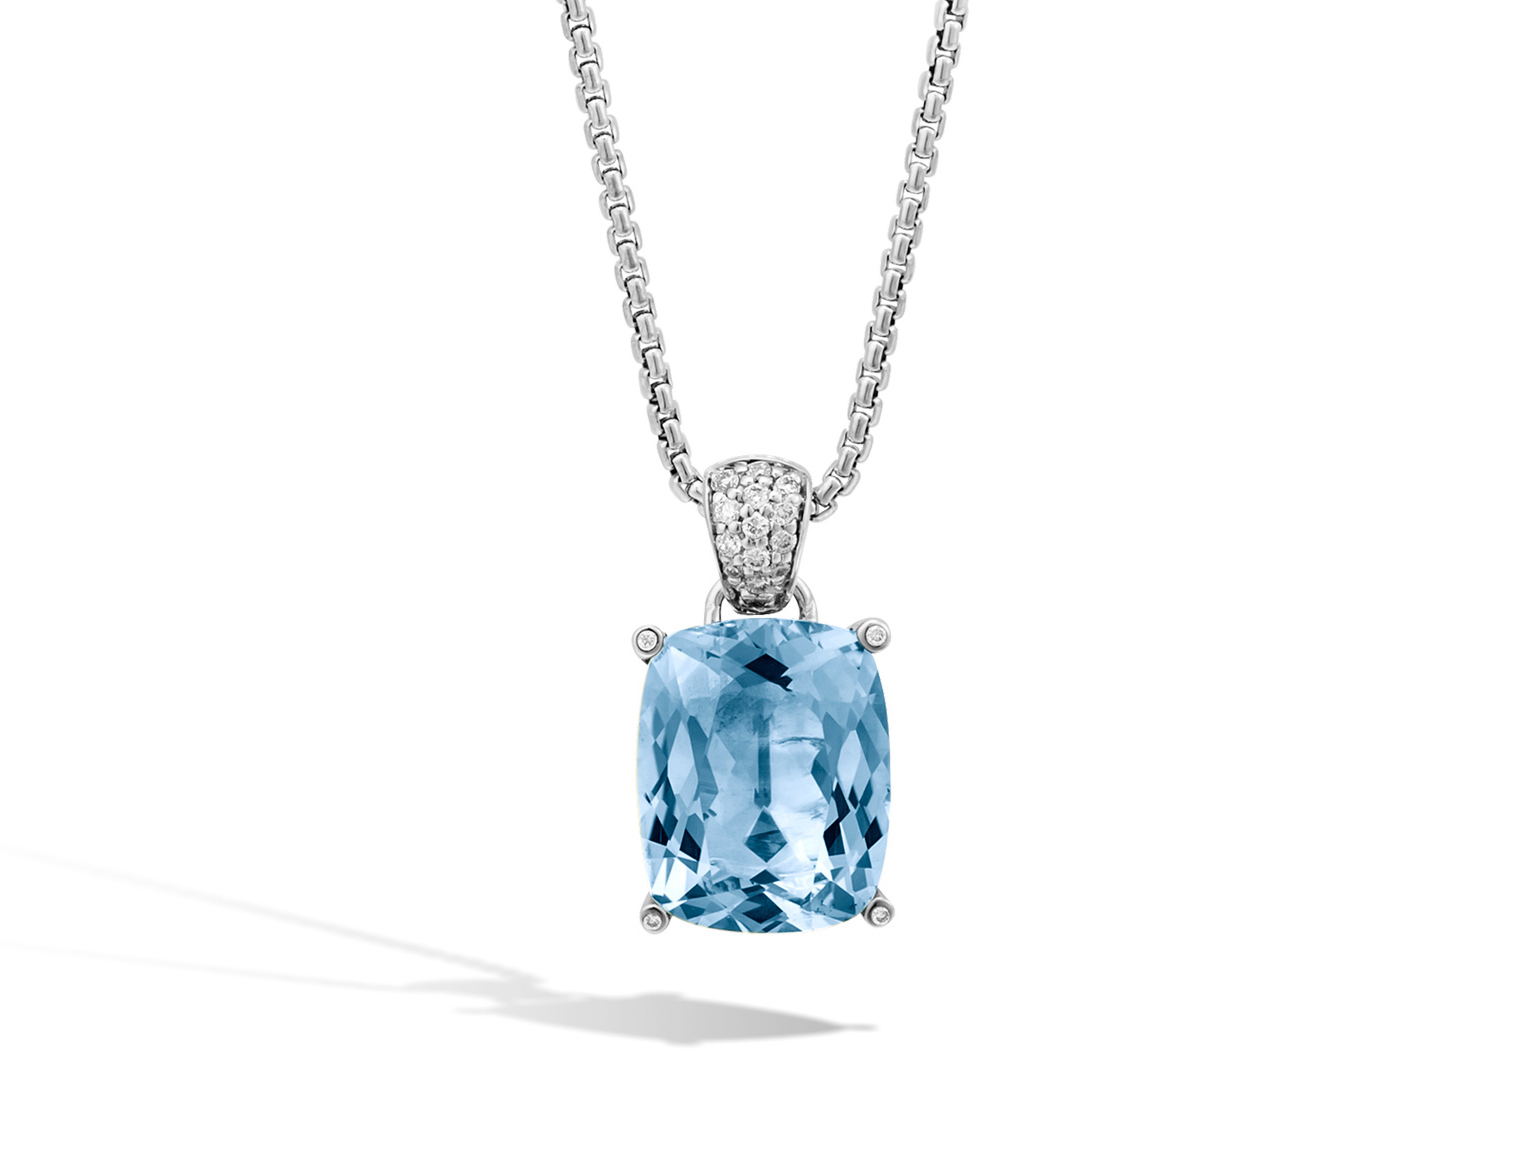 product square alt london necklace pendant wg sloane kiki topaz mcdonough grace blue jewellery